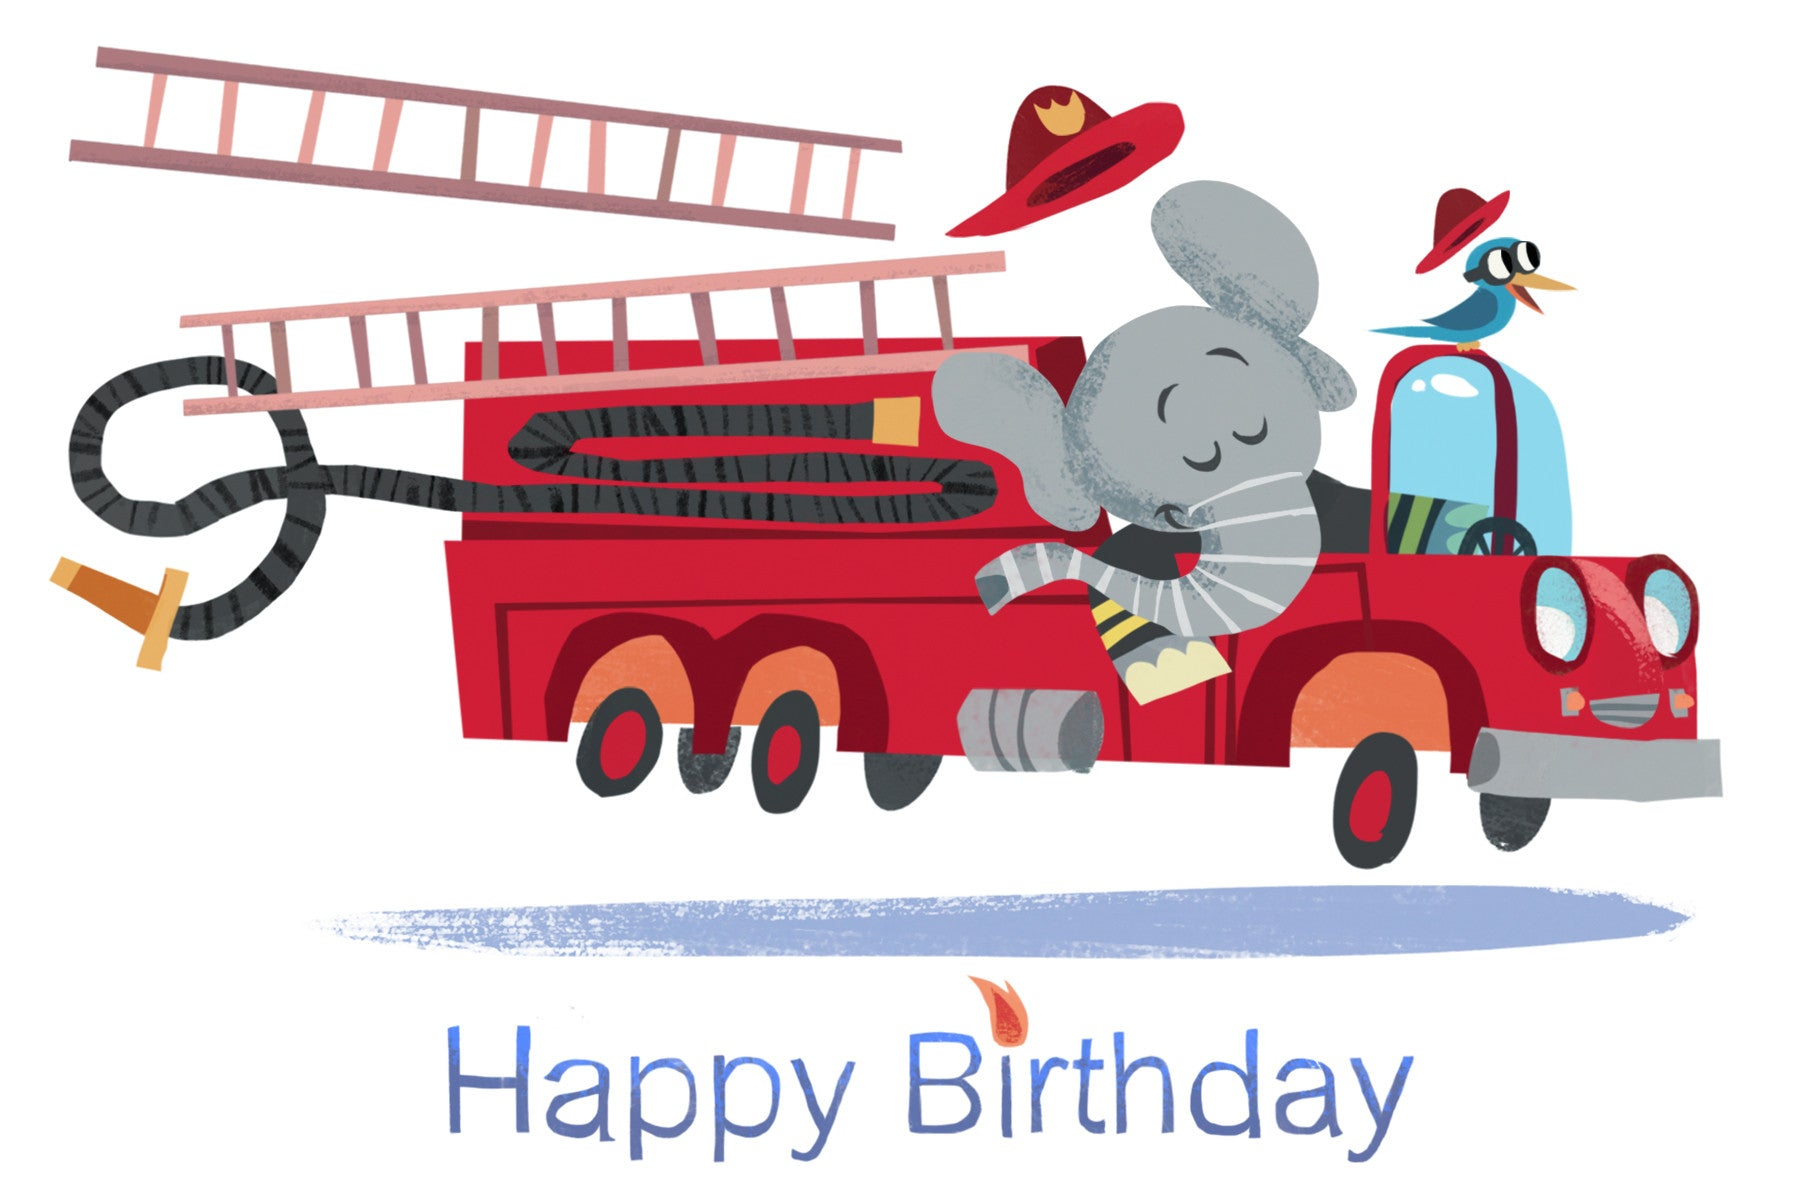 Firetruck Birthday Card